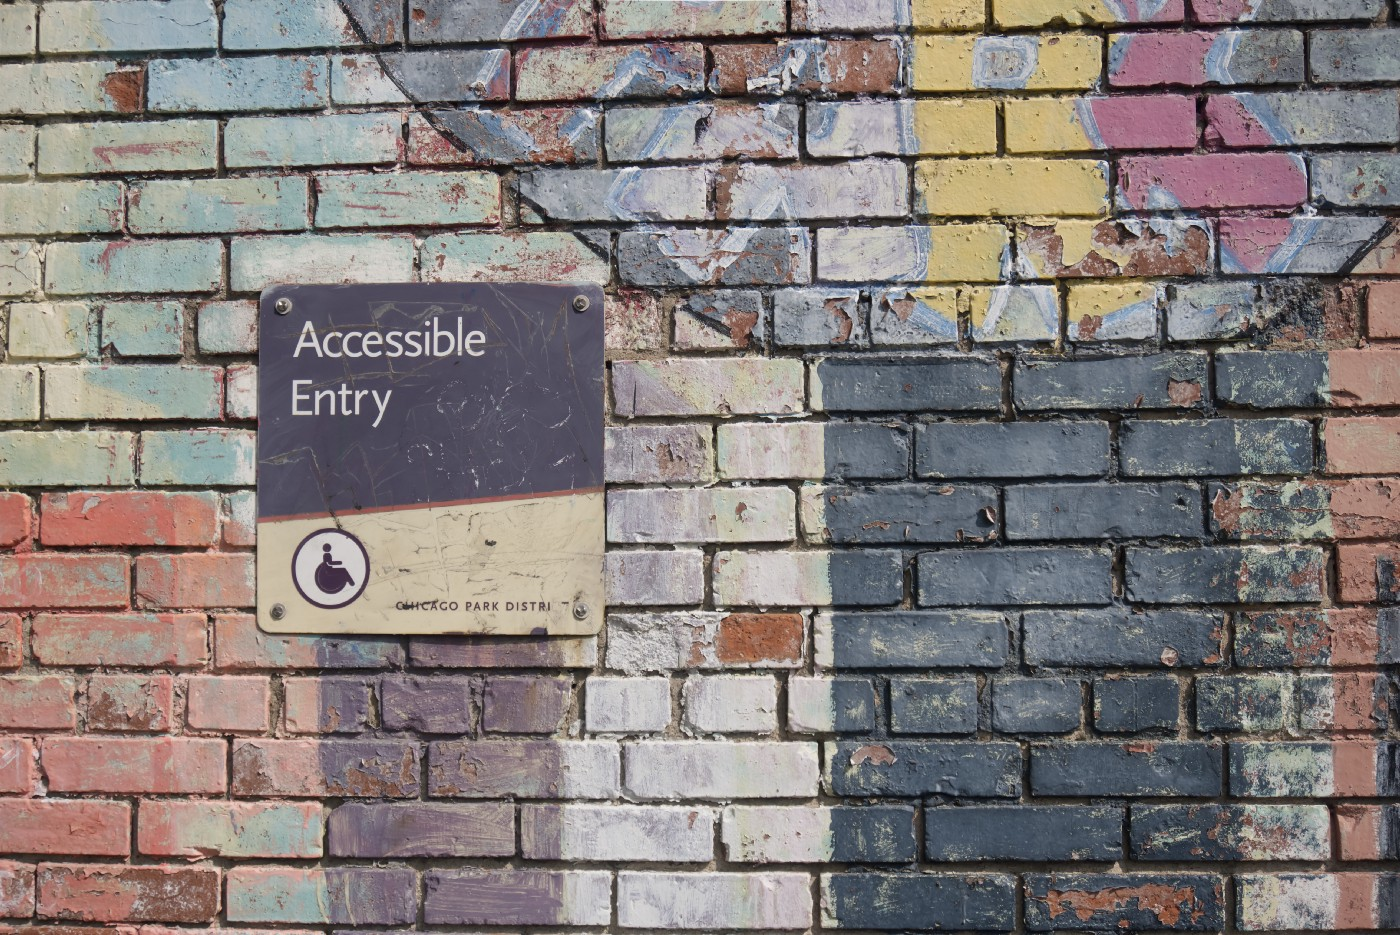 Brick wall with sign that says accessible entry